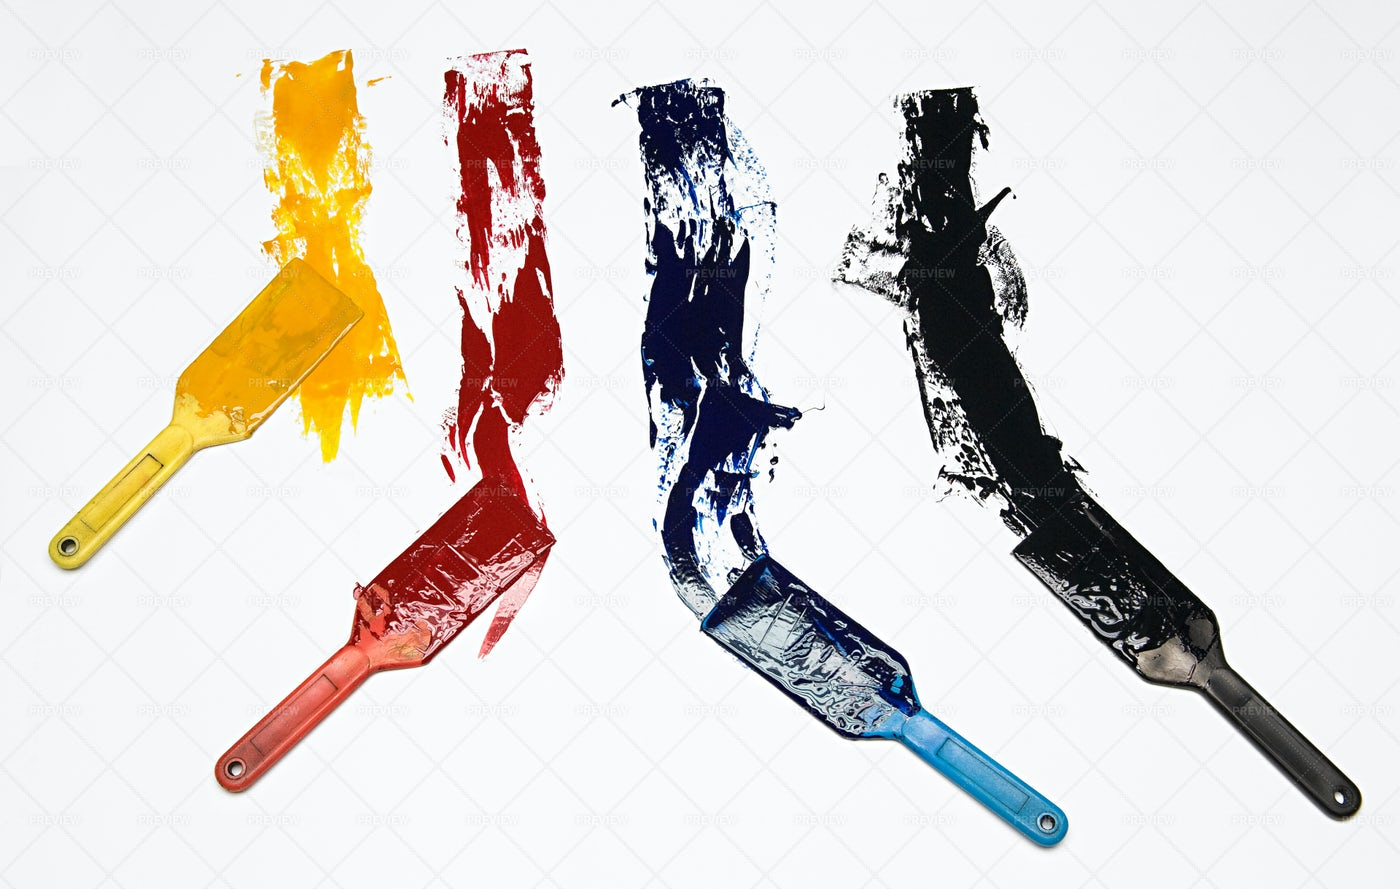 Brushes With Assorted Colored: Stock Photos